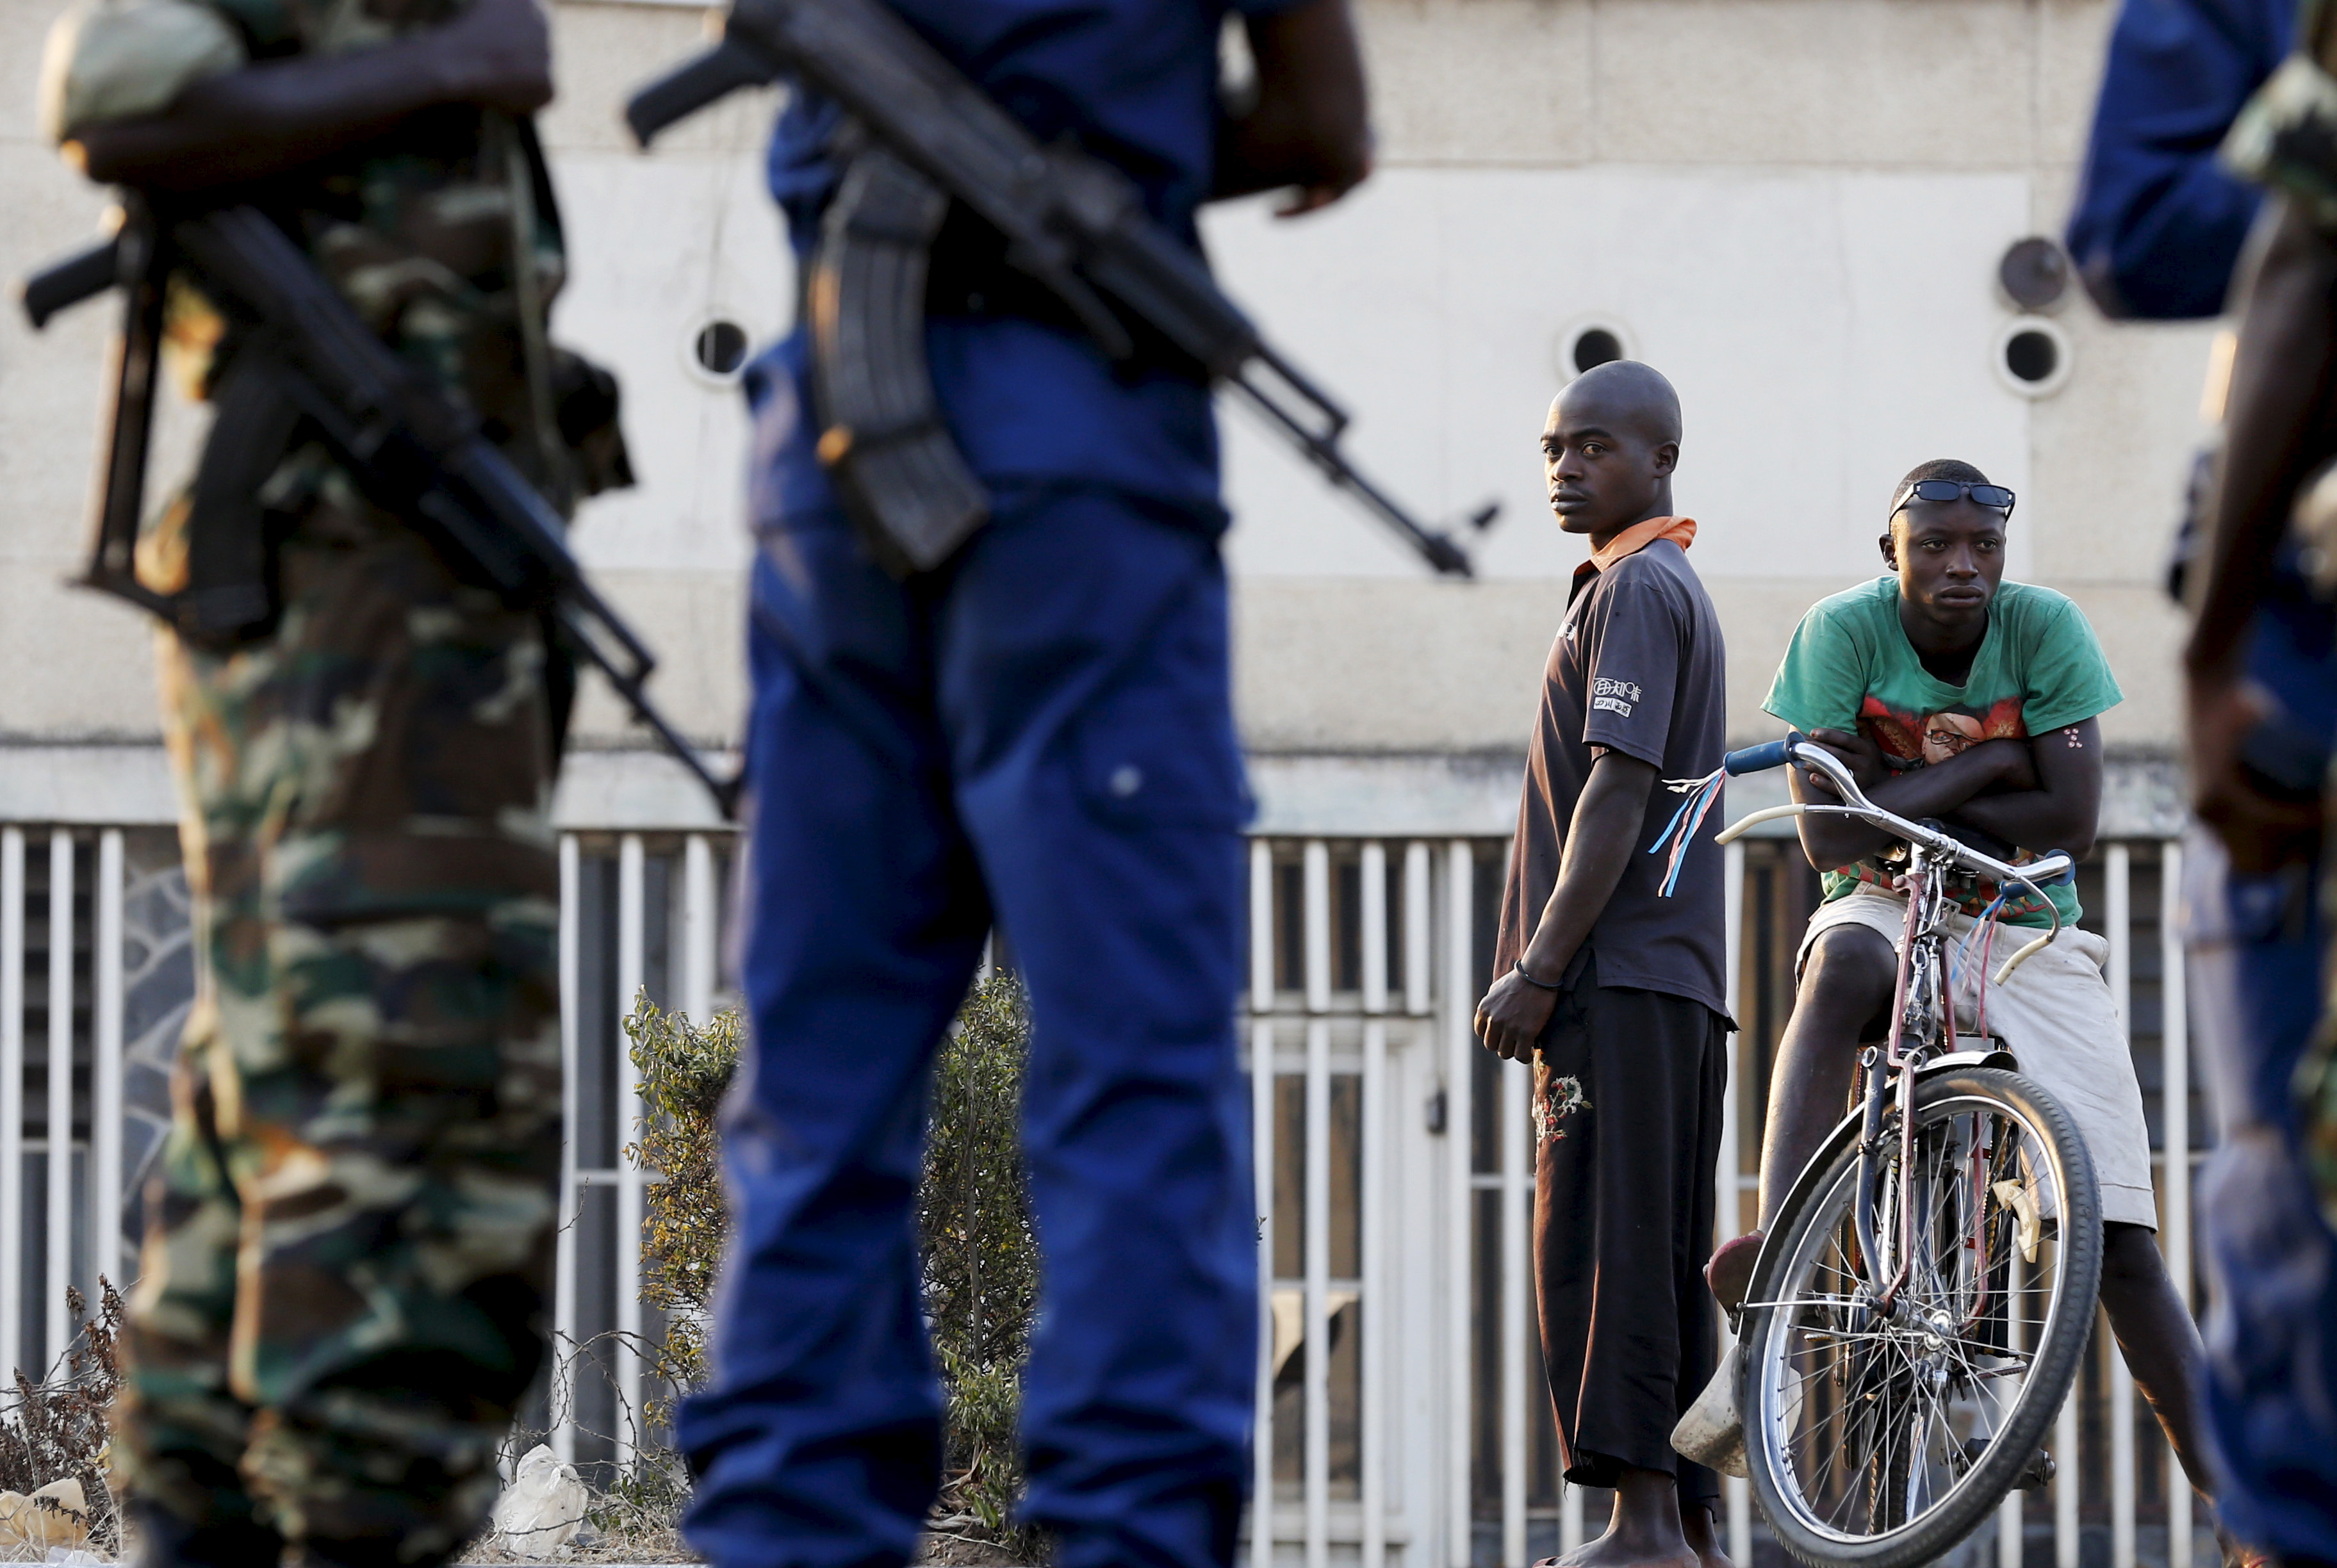 Residents look on as police and soldiers guard a voting station in Burundi's capital Bujumbura during the country's presidential elections, July 21, 2015